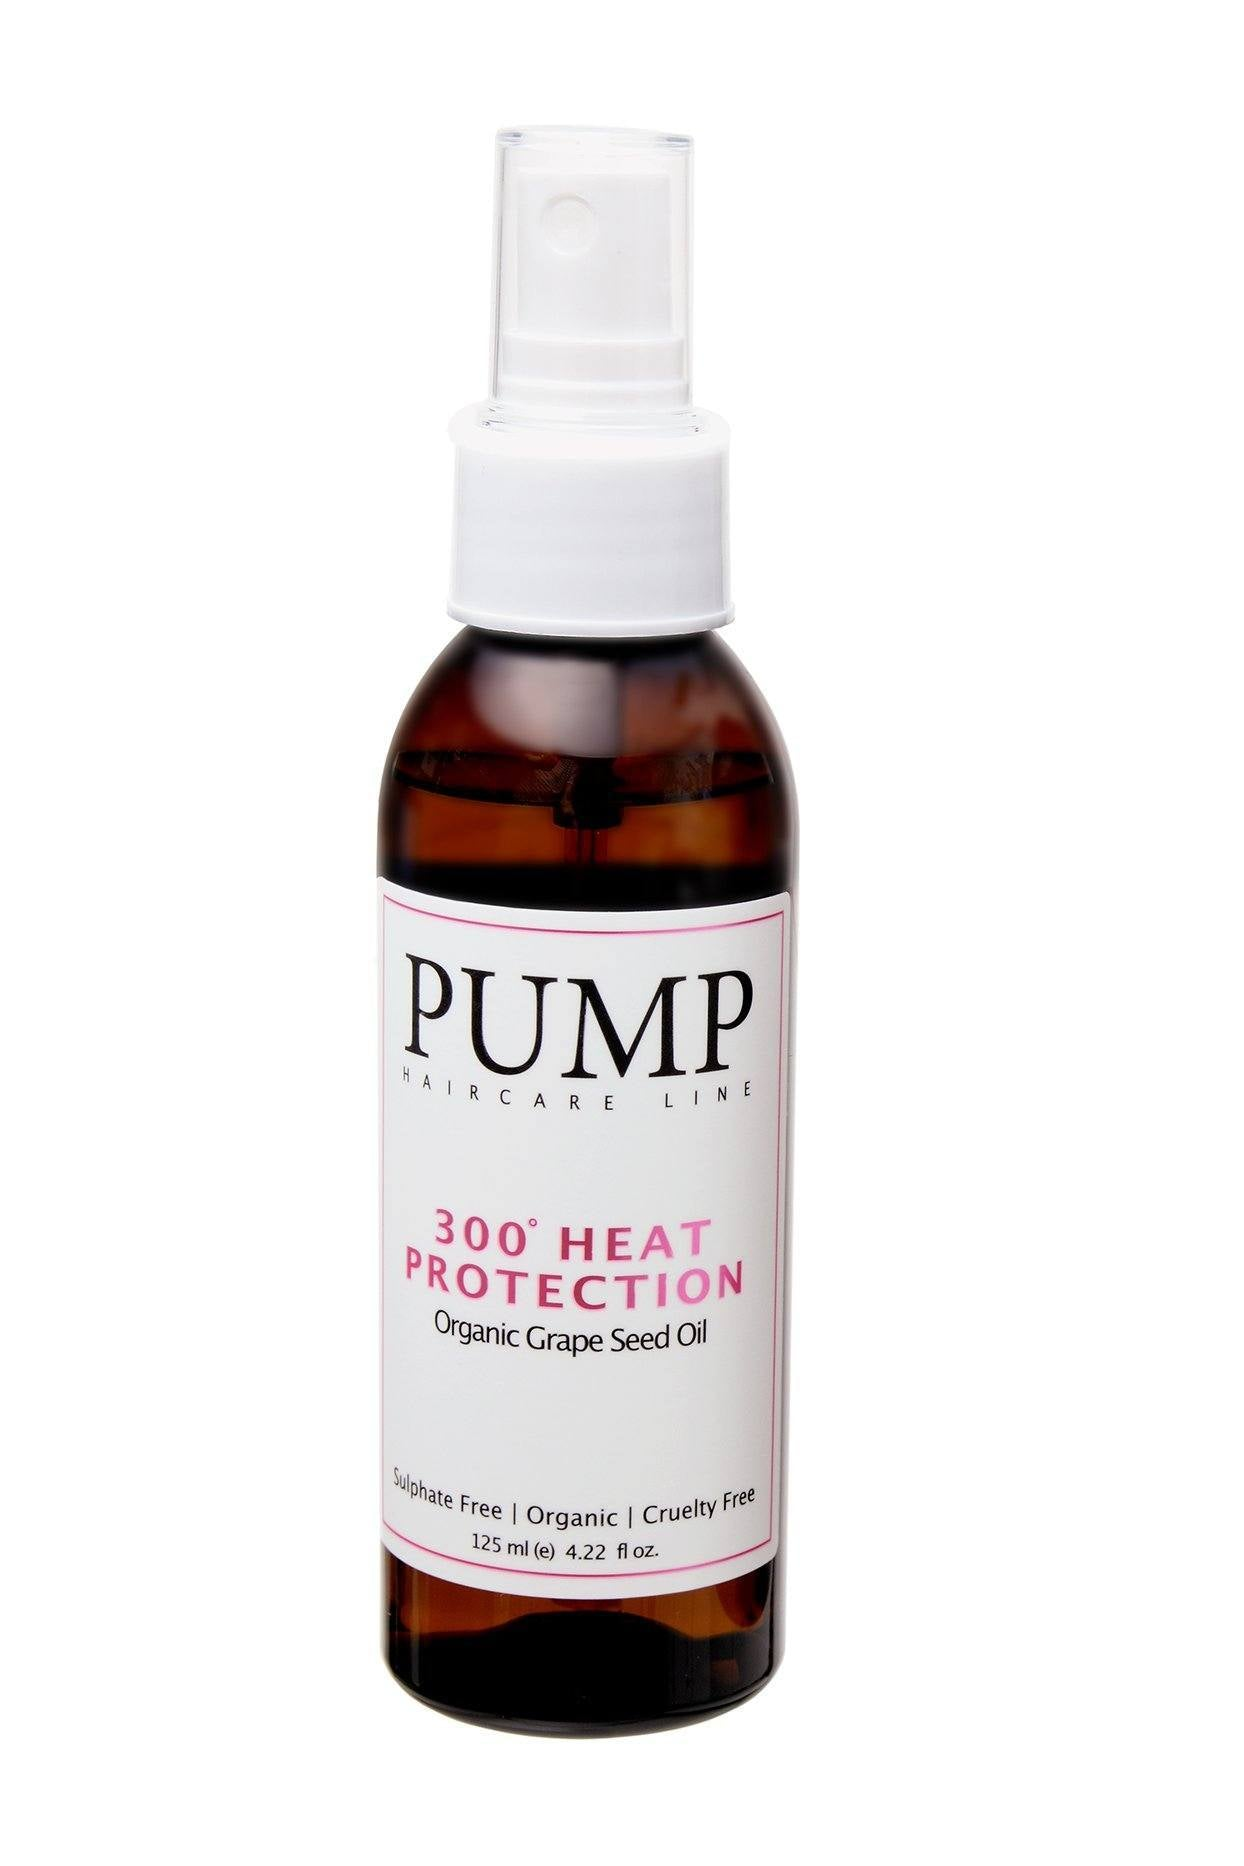 Pump 300° Heat Protection